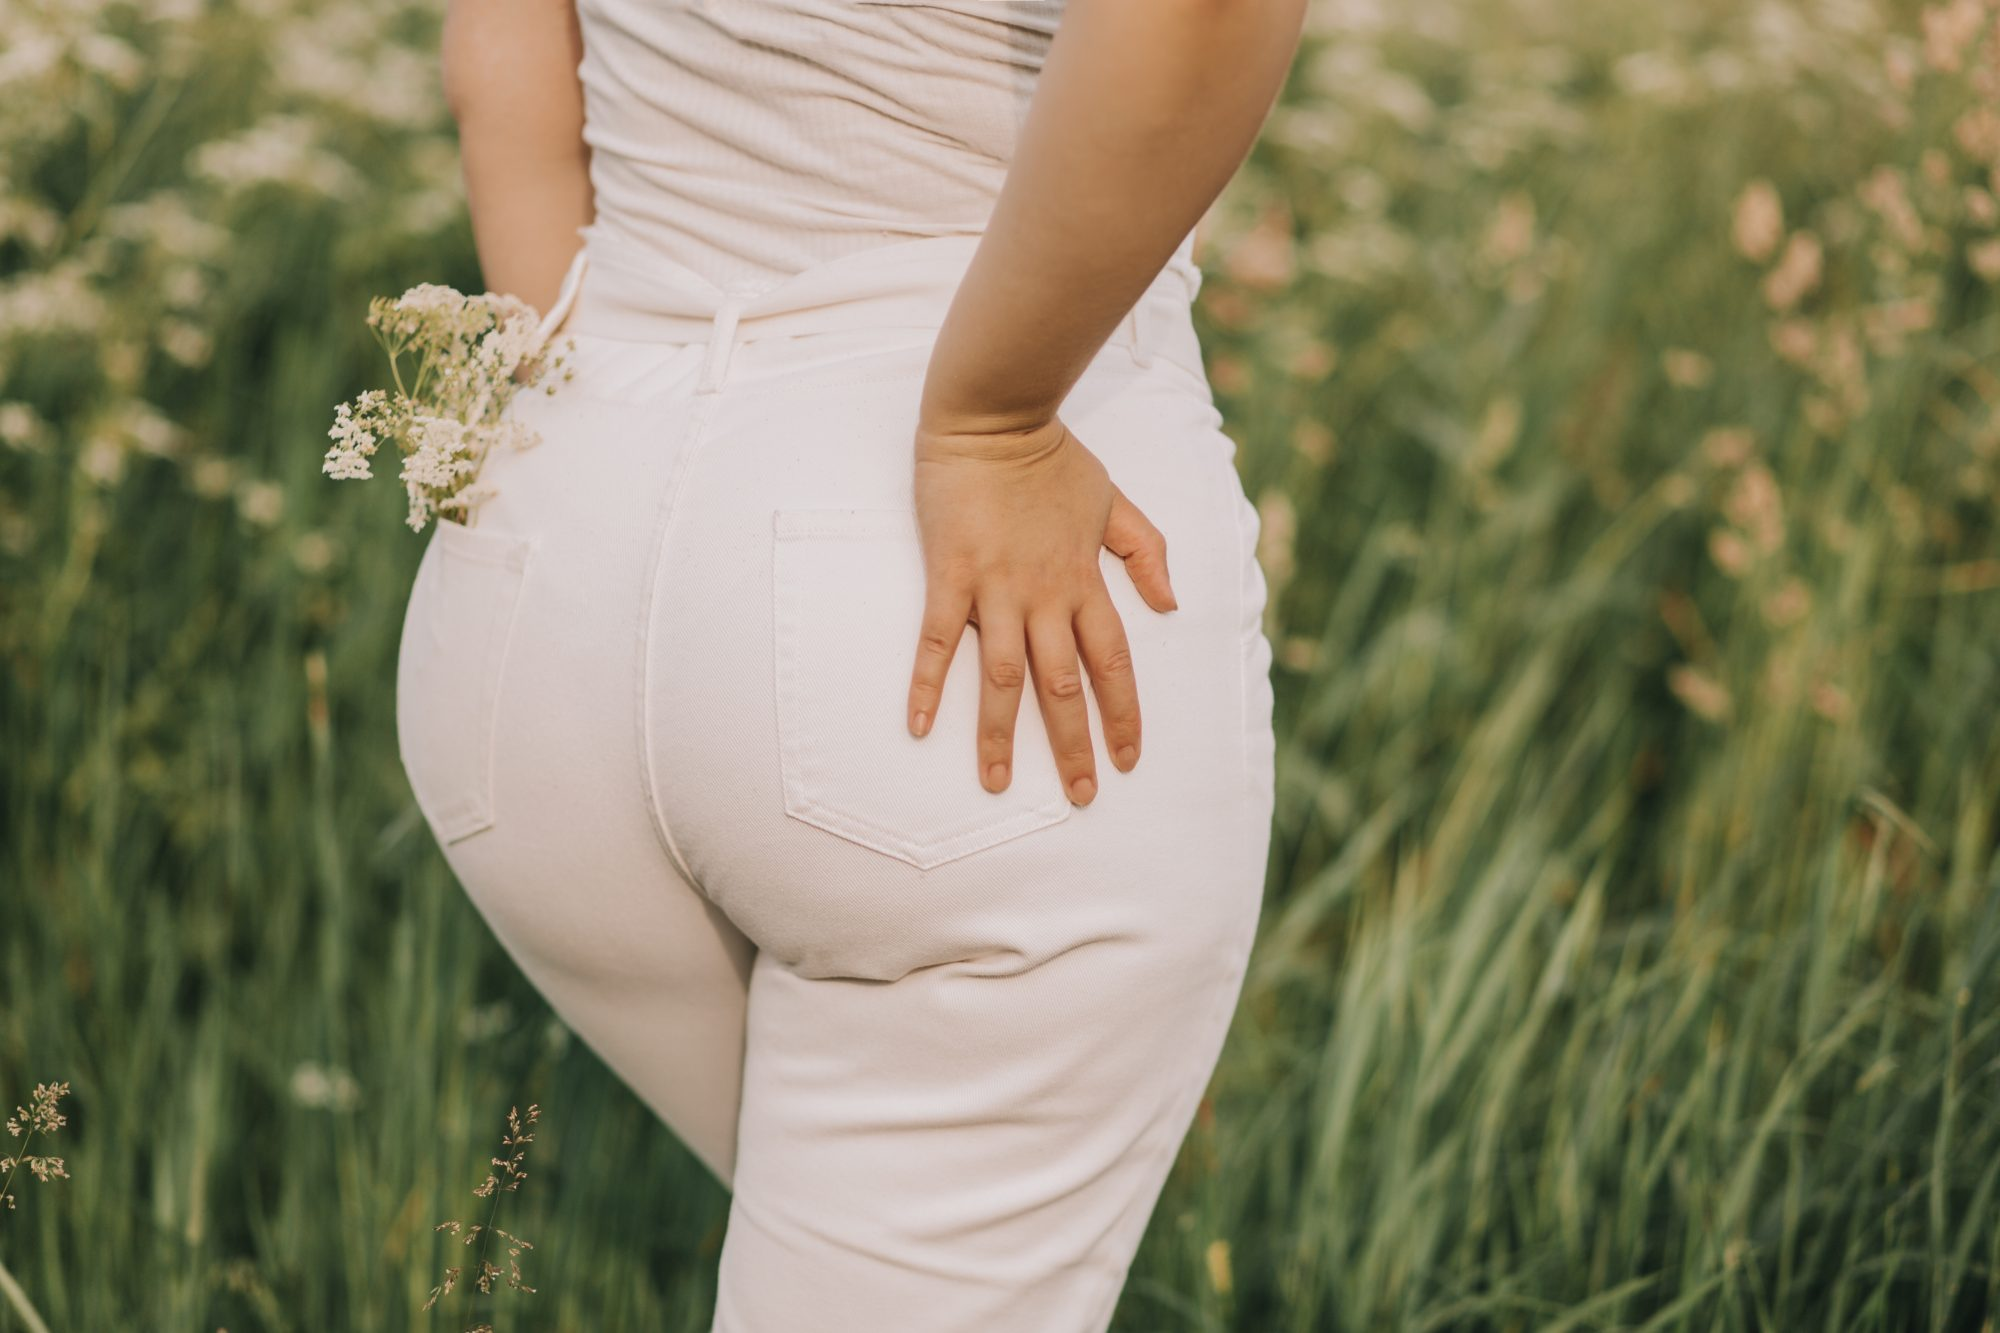 white jeans for women nude panties